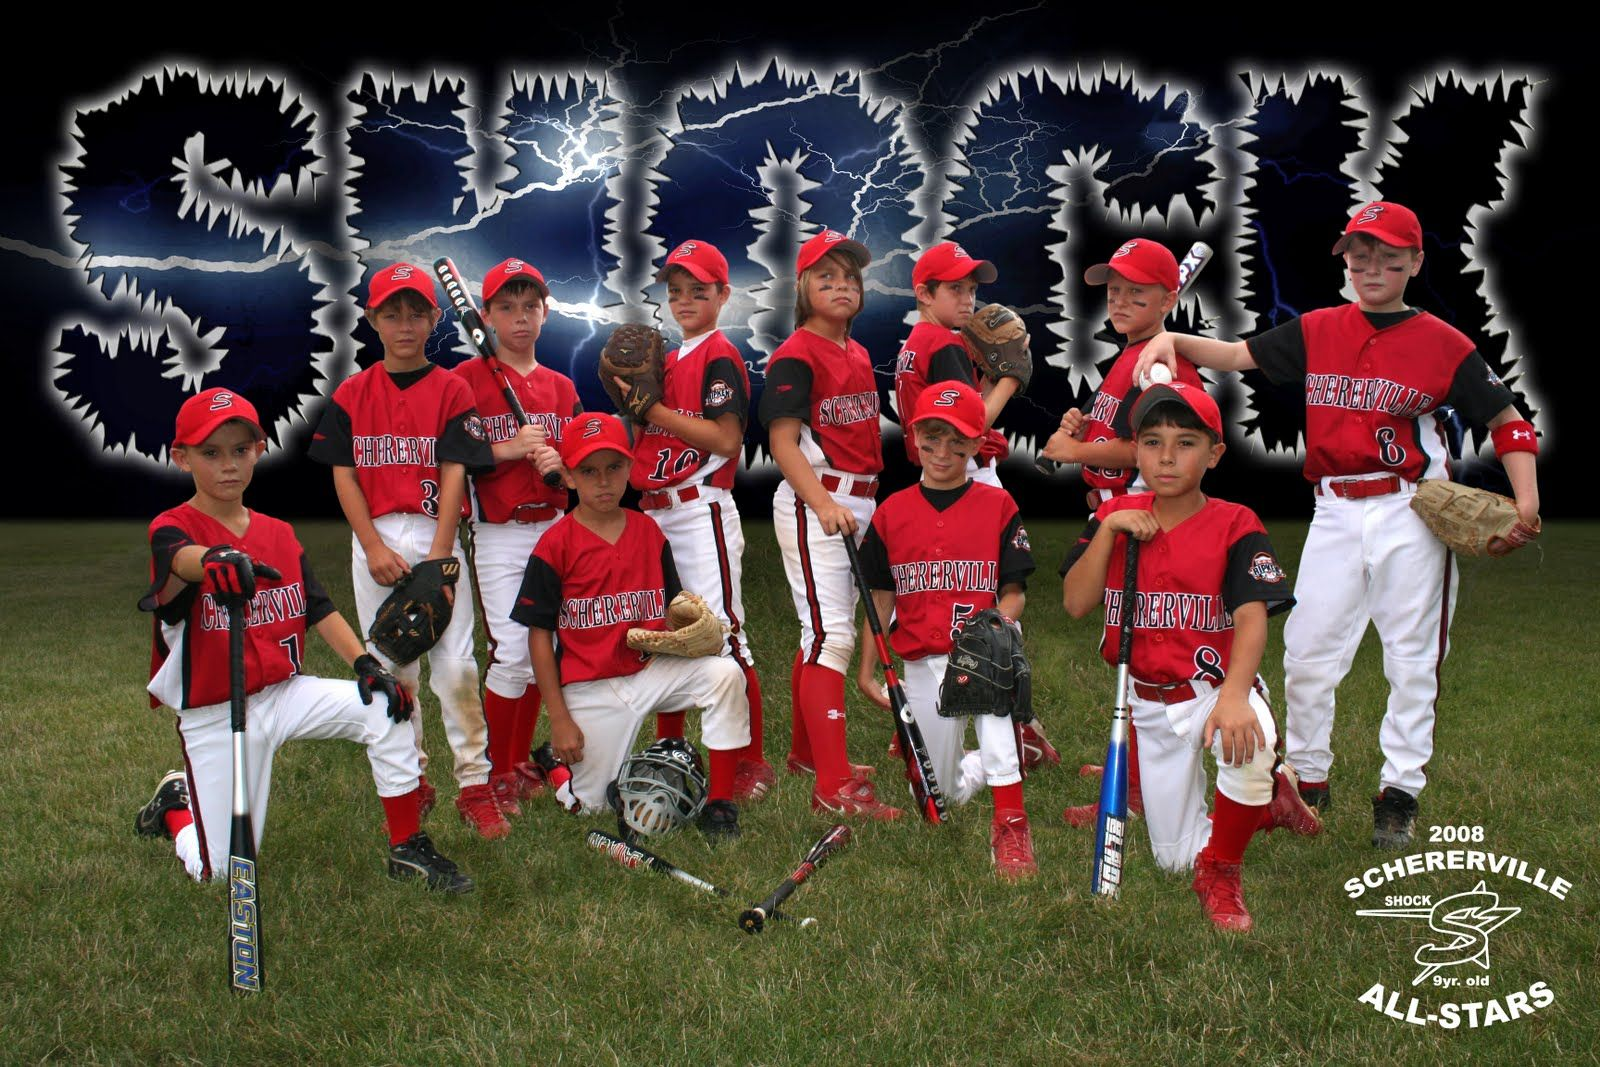 Banner Design Baseball Team With Images Baseball Team